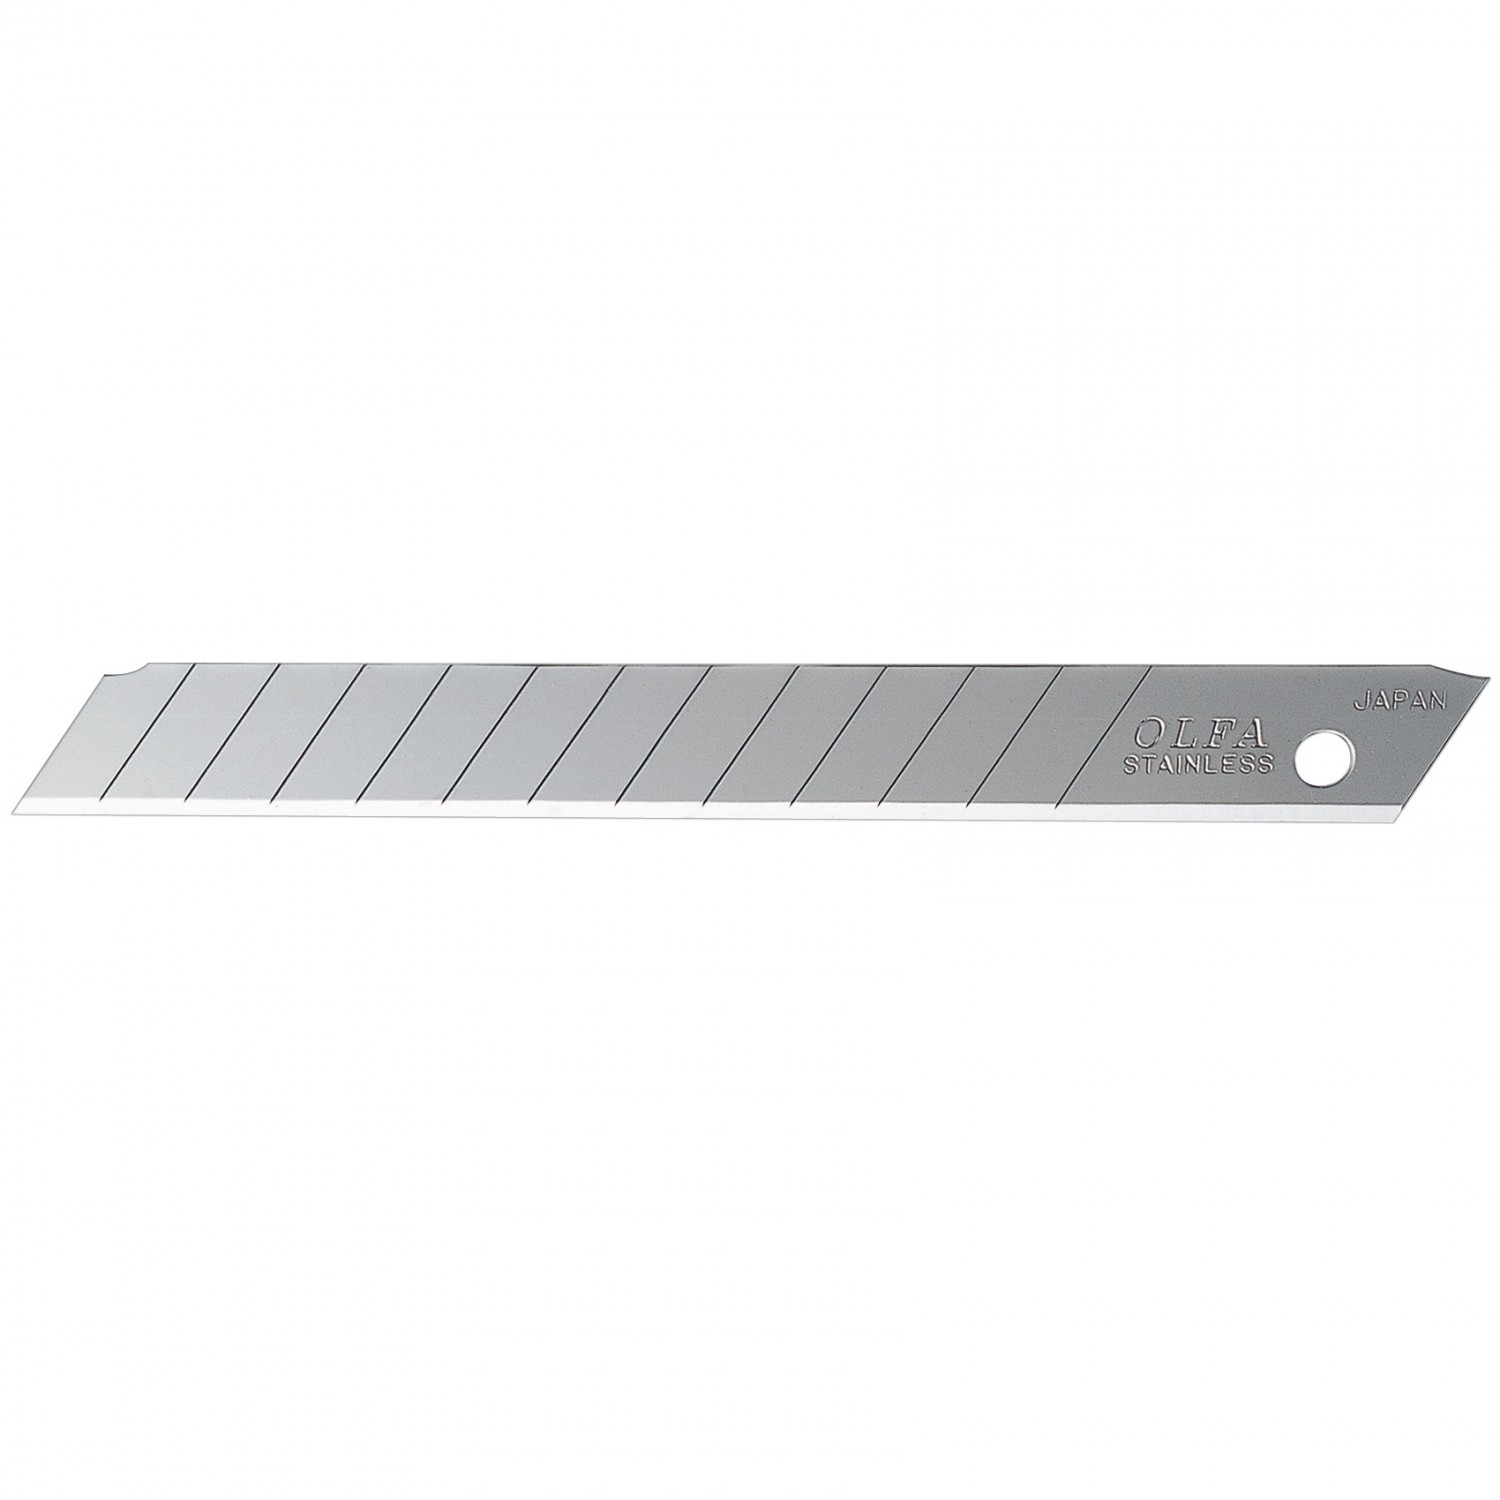 Olfa AB-10S Stainless Steel Blade